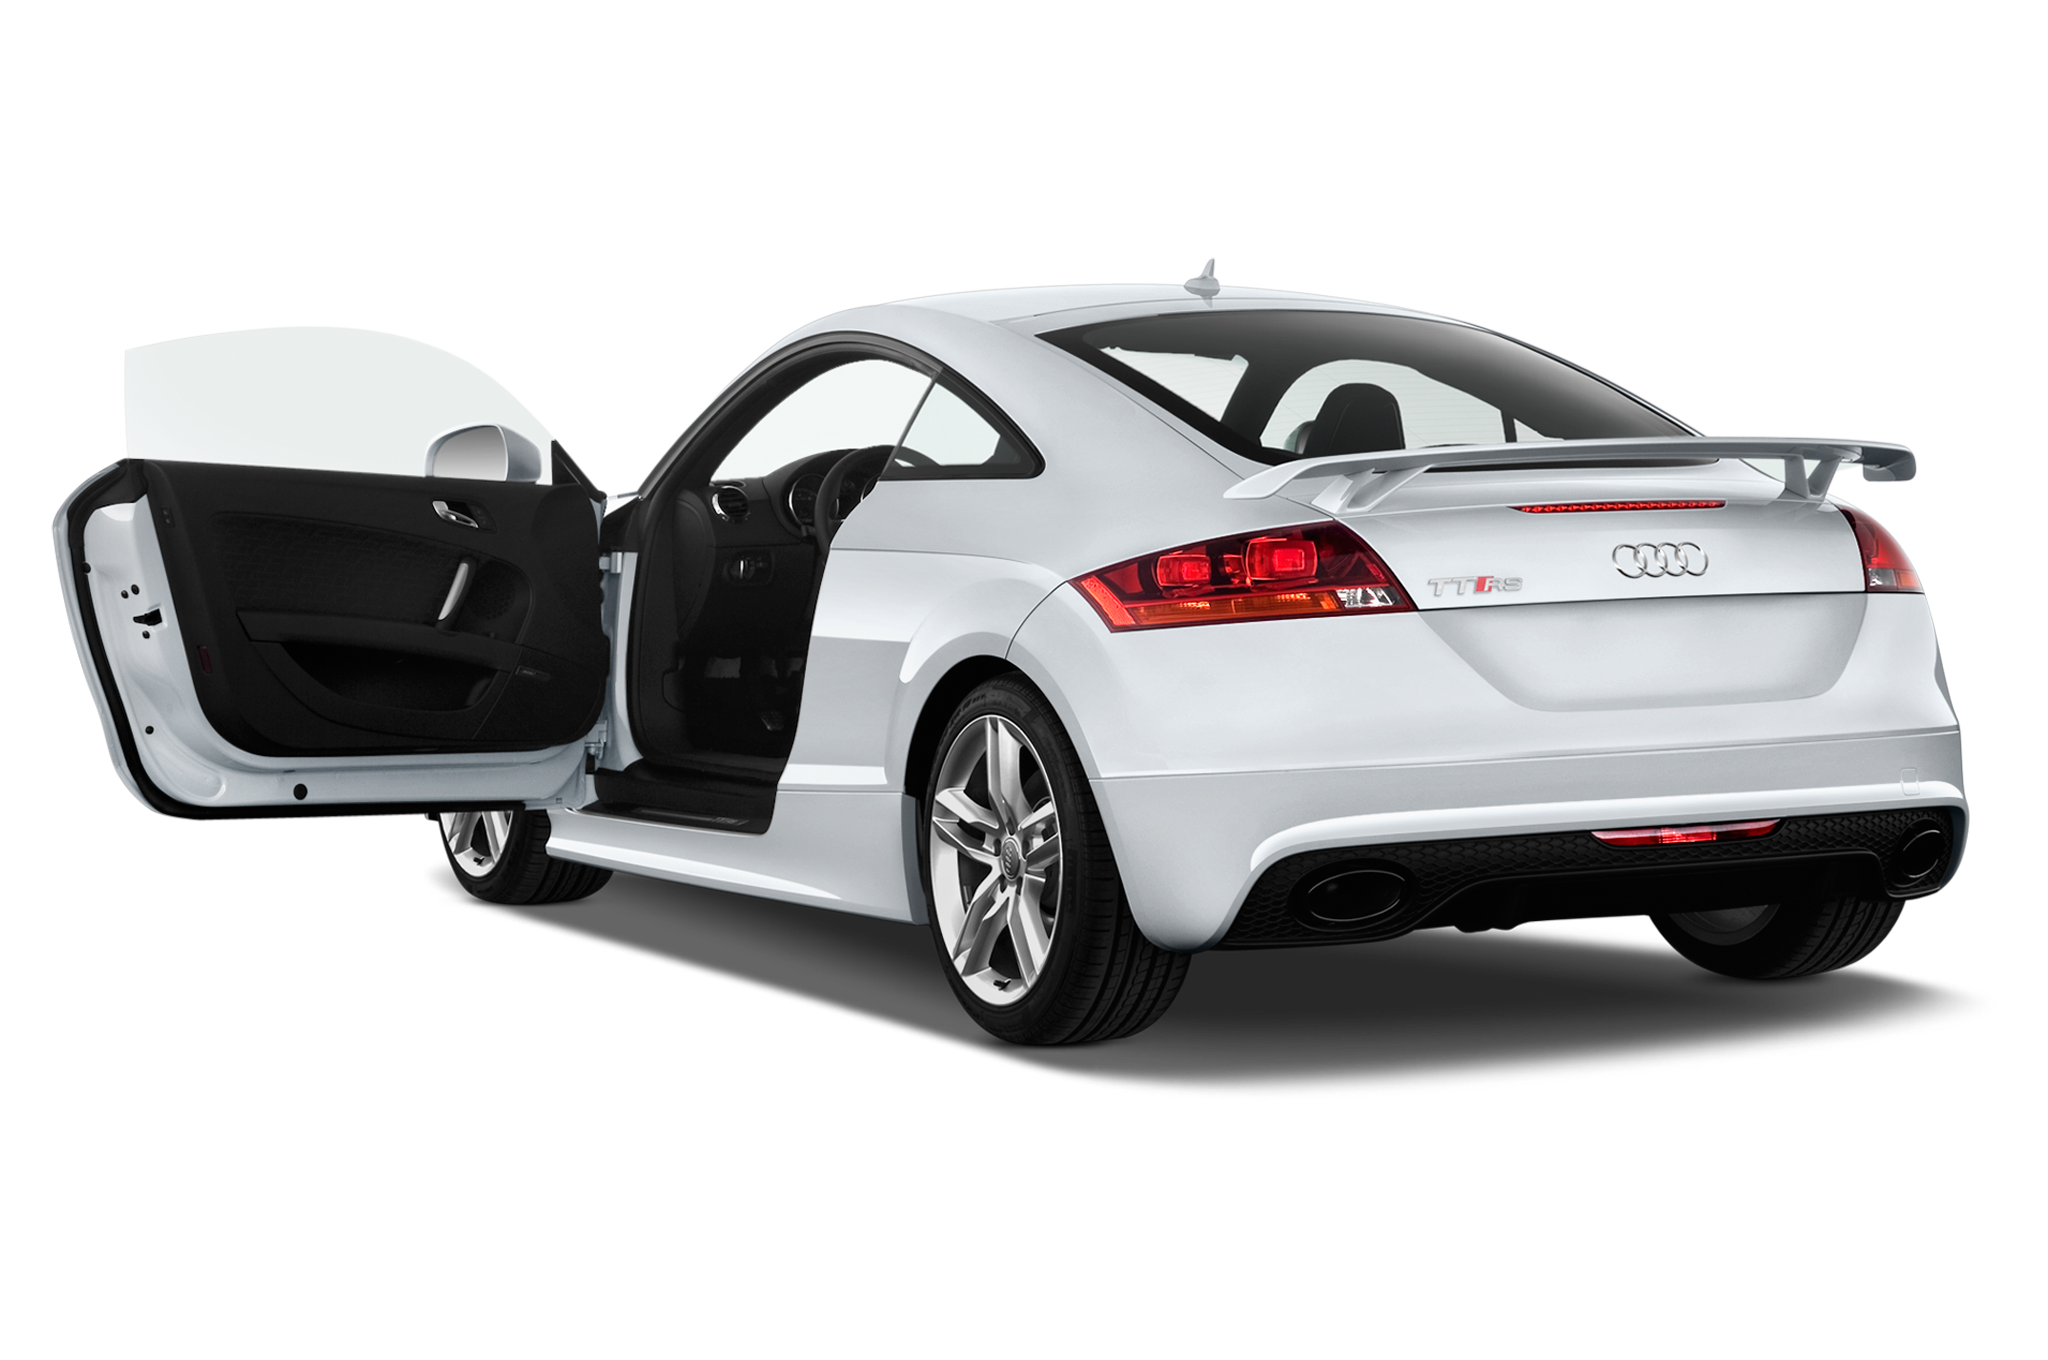 Car open trunk clipart svg freeuse 2018 Audi TT RS One Week Review | Automobile Magazine svg freeuse